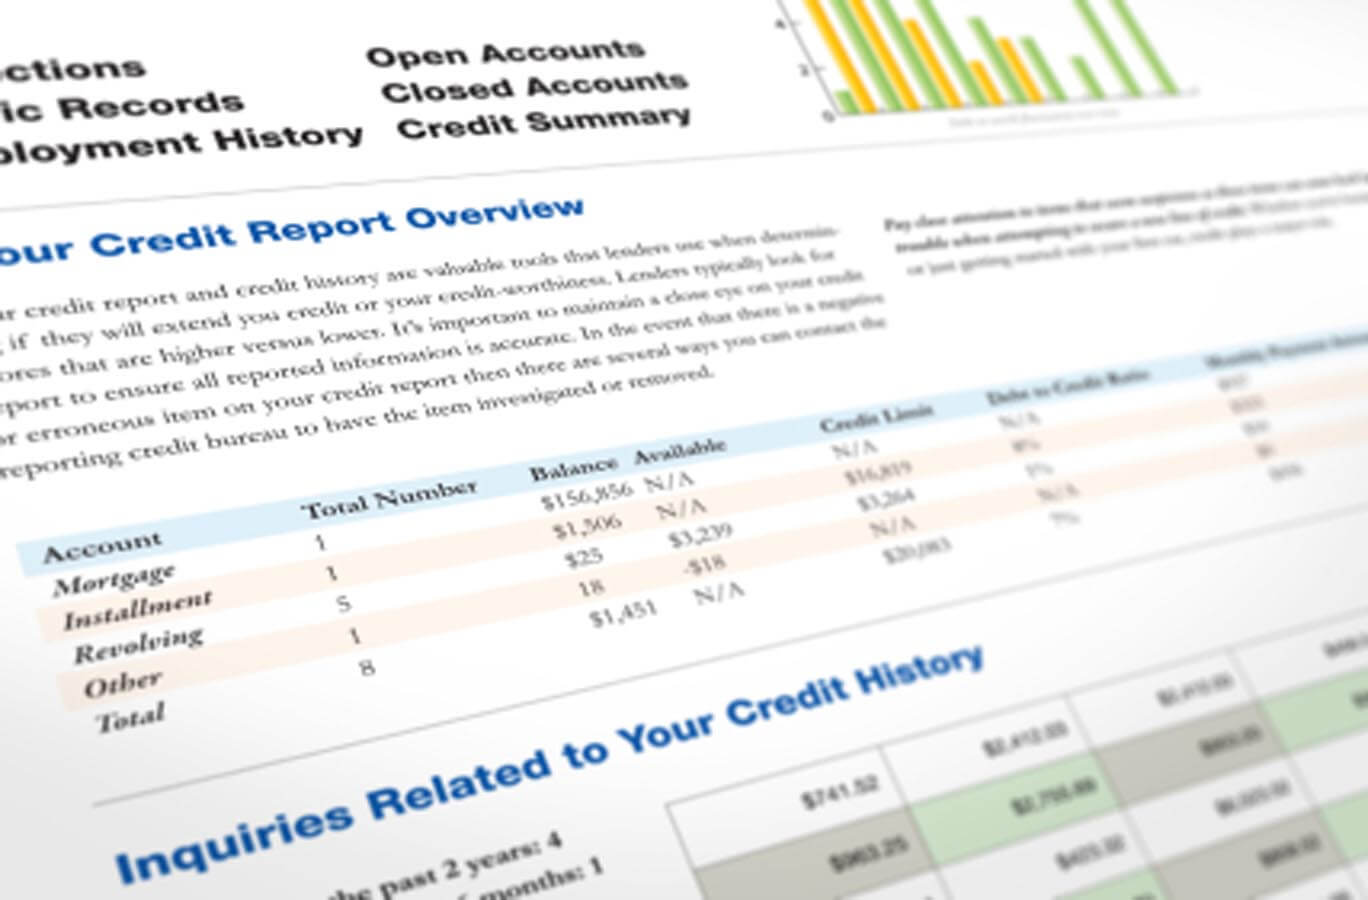 It's important to know what's in your credit report